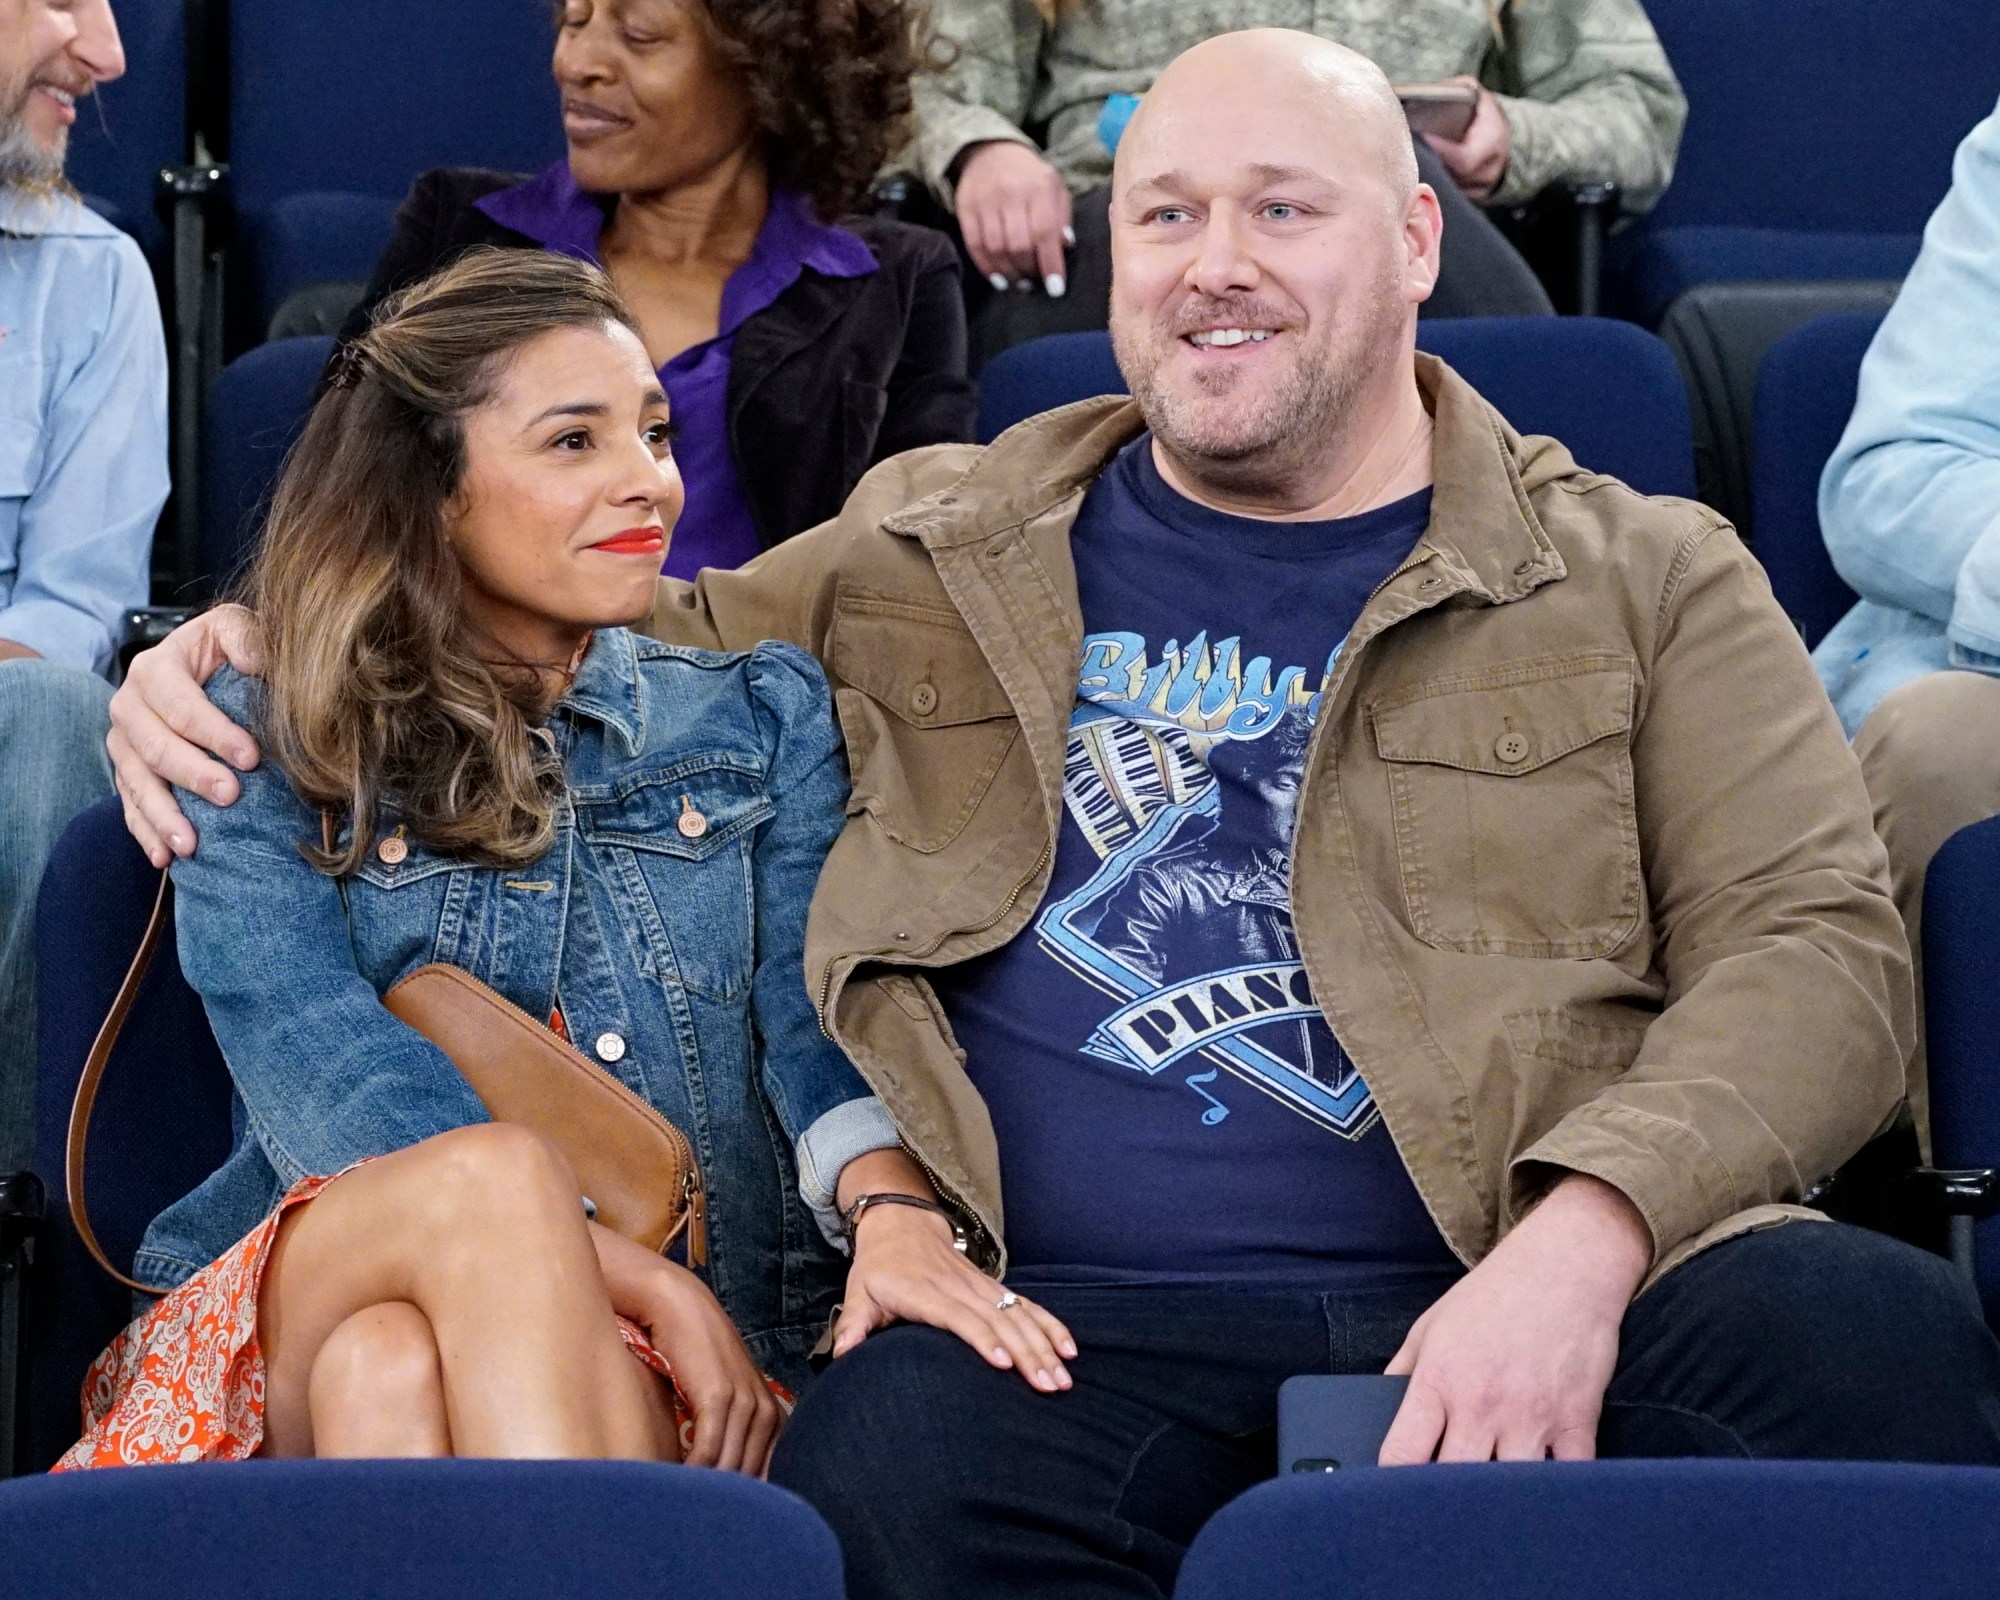 Will Sasso and Christina Vidal Mitchell sitting side by side with arms wrapped around each other watching an event on united we fall